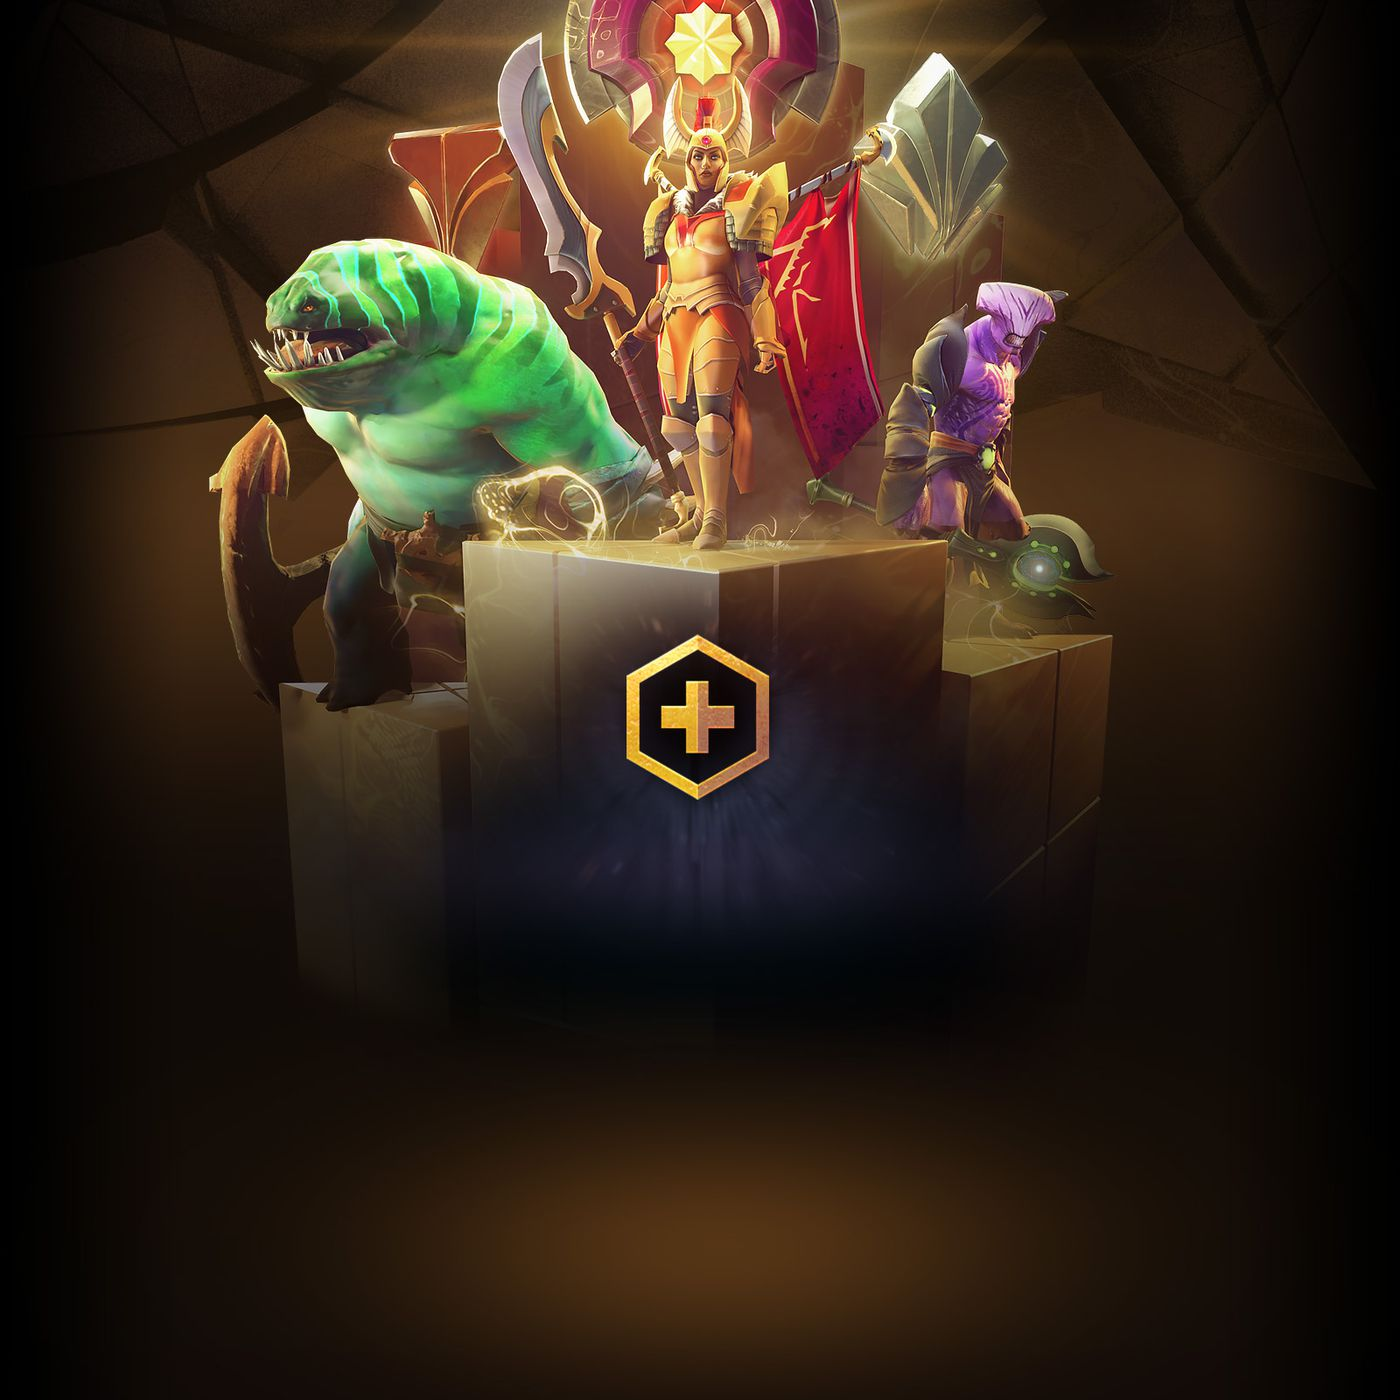 Valve releases Dota 2 Plus subscription service with